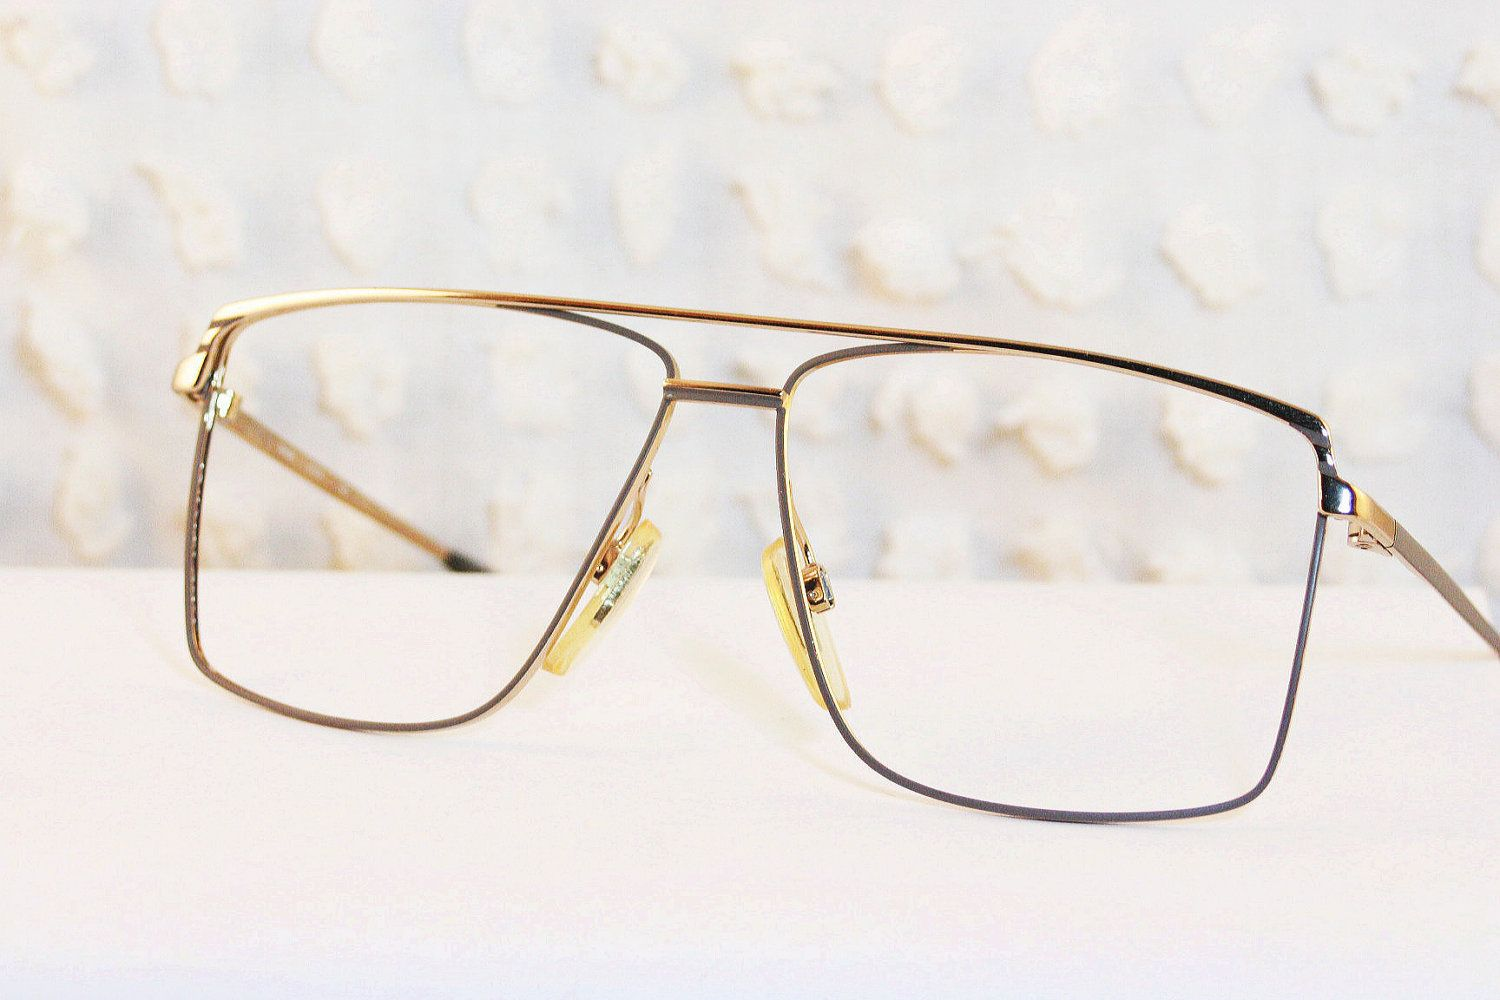 0e6e485bd6 80s Mens Glasses 1980 s Aviator Eyeglasses Metal Wire Rim Frame Two Tone  Finish 58 13 NOS by Univis Optical.  47.00